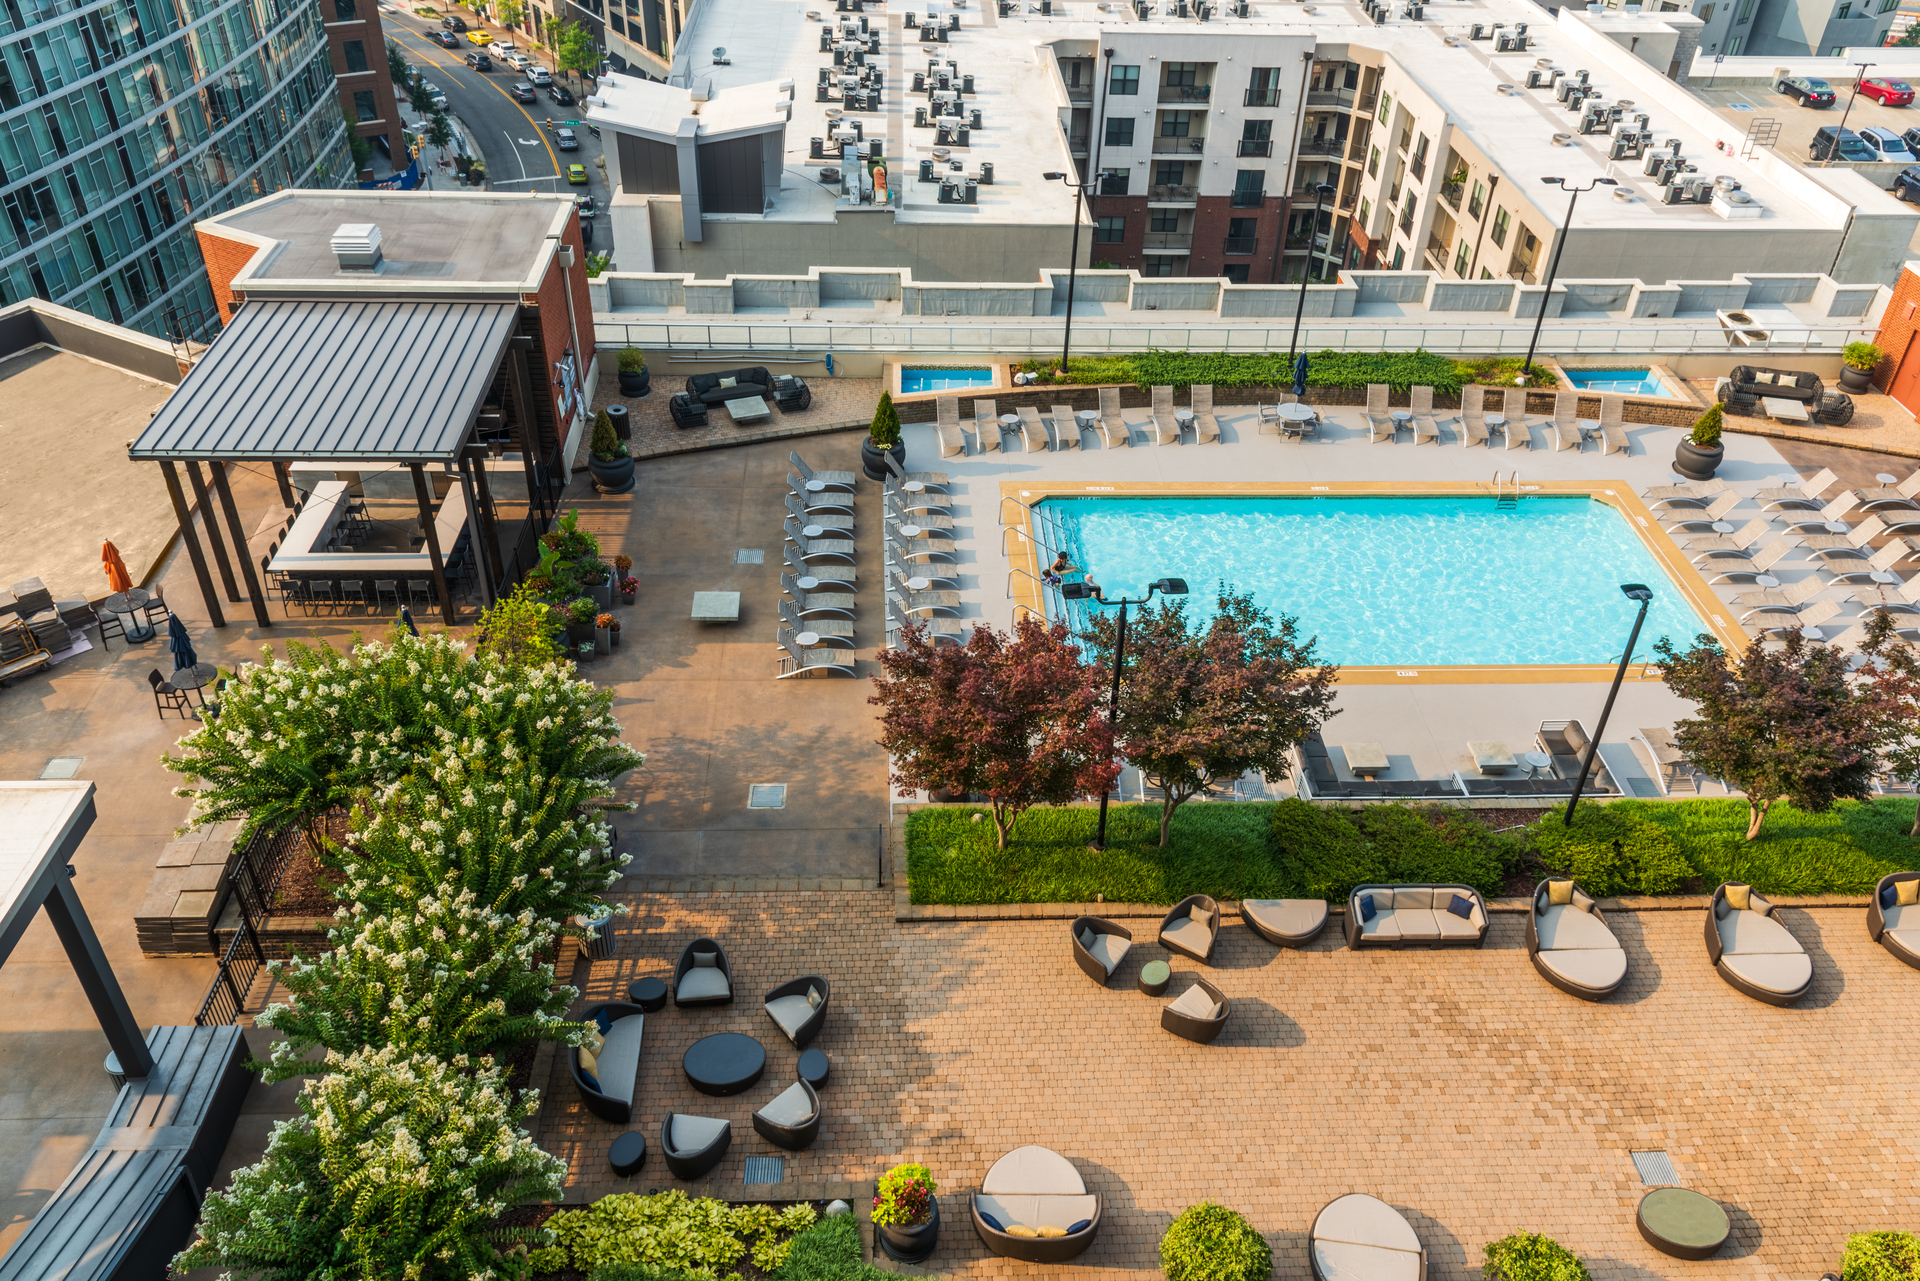 The residents of this condo are able to enjoy the rooftop patio, bar and pool.  With lots of patio furniture, a pergola and a bar to enjoy refreshments for all.